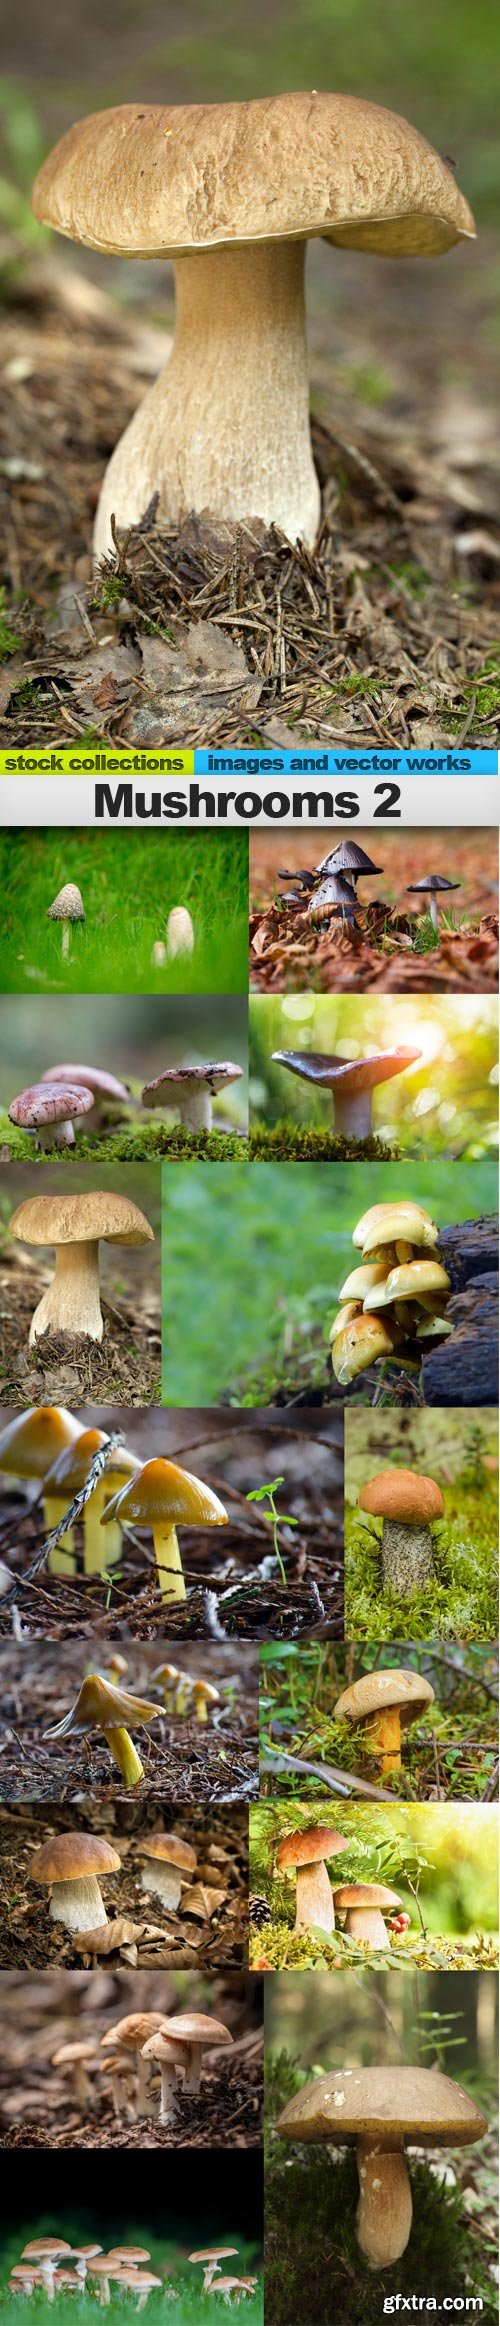 Mushrooms 2, 15 x UHQ JPEG